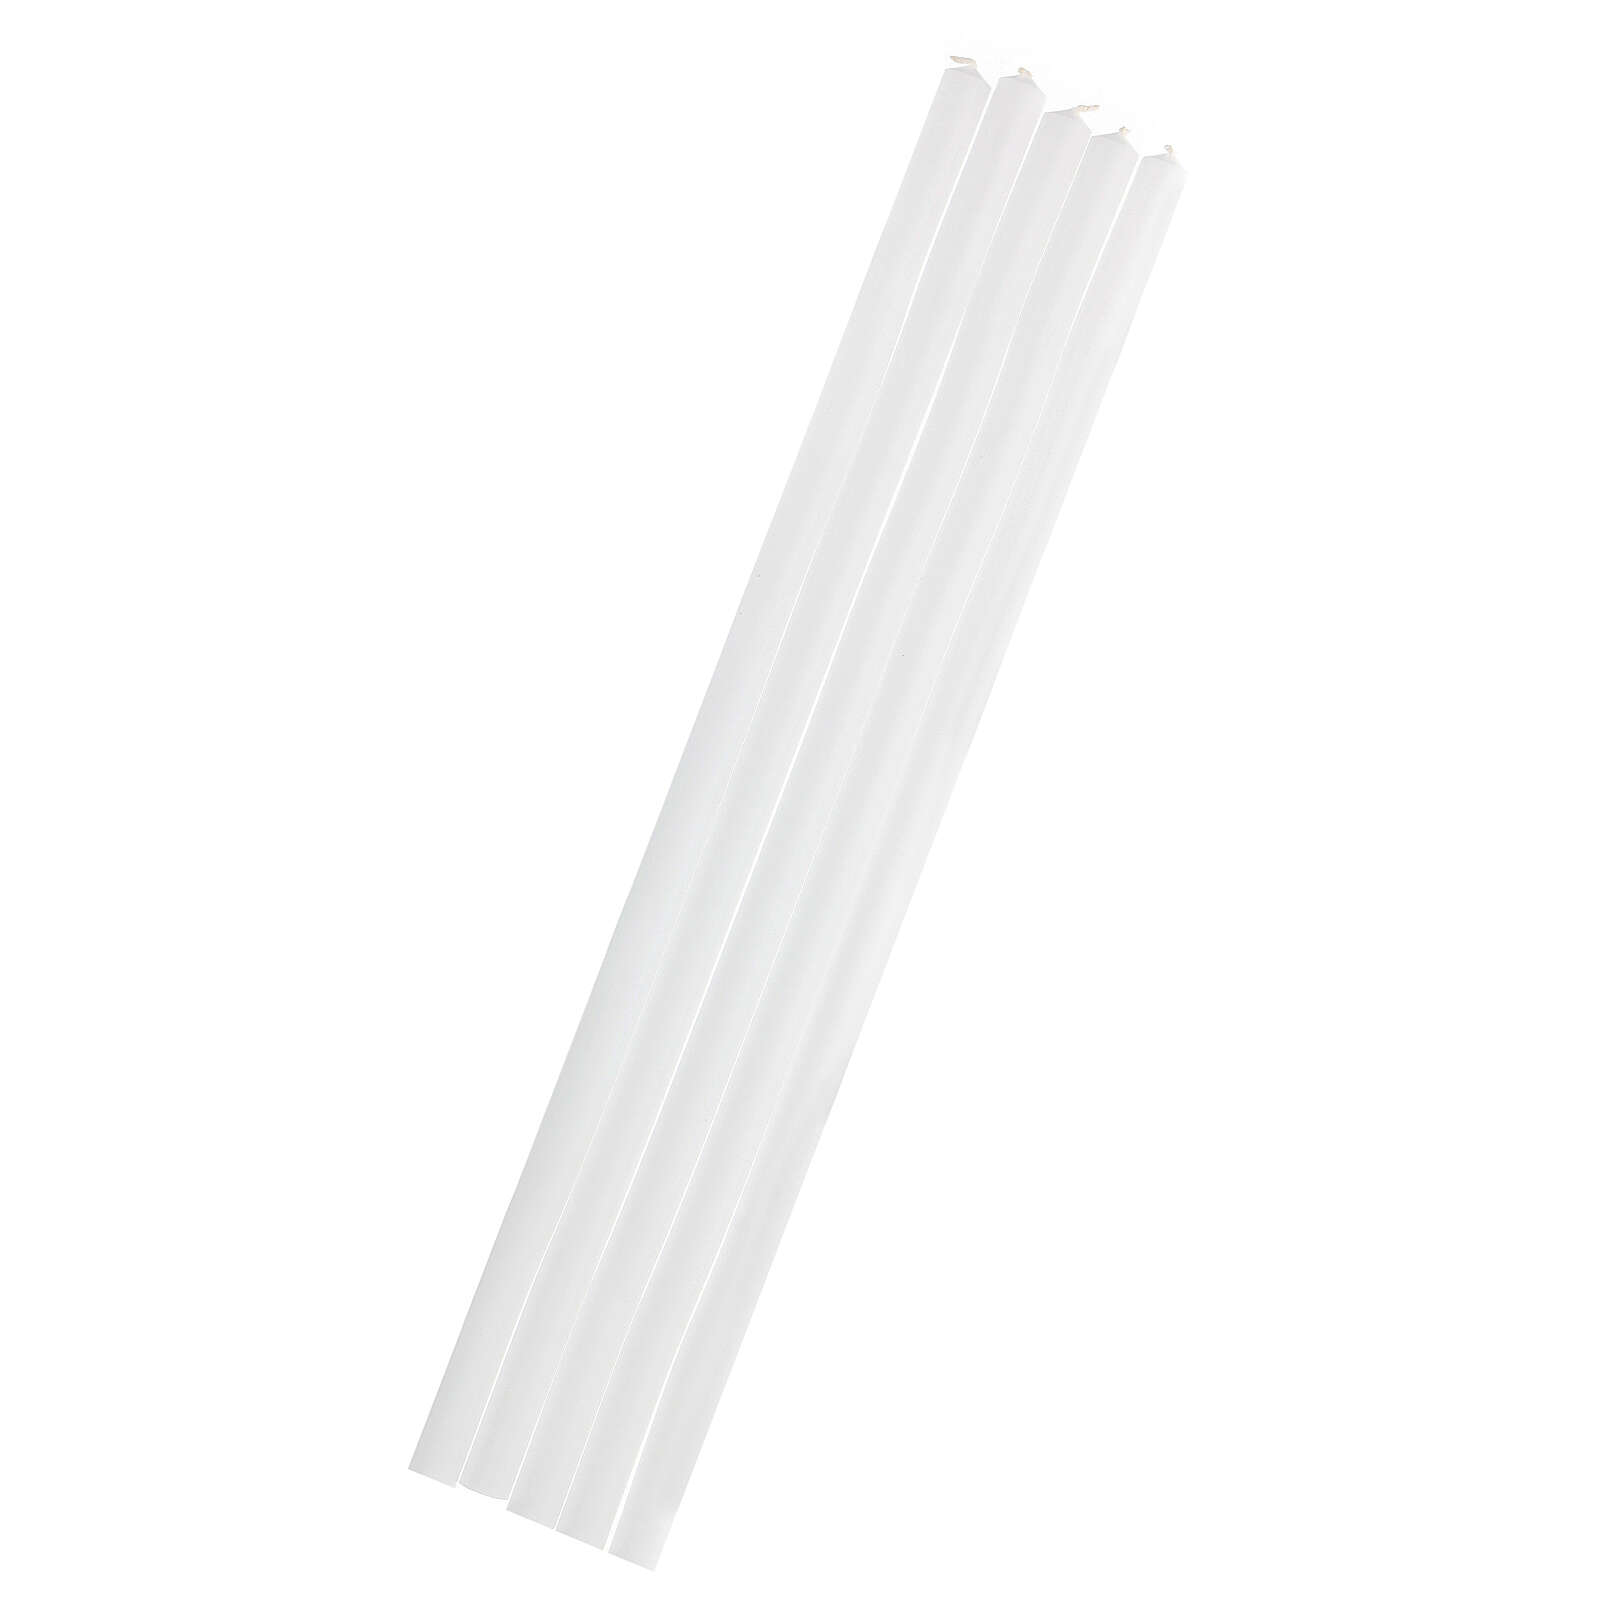 Procession, votive candles (package) 3